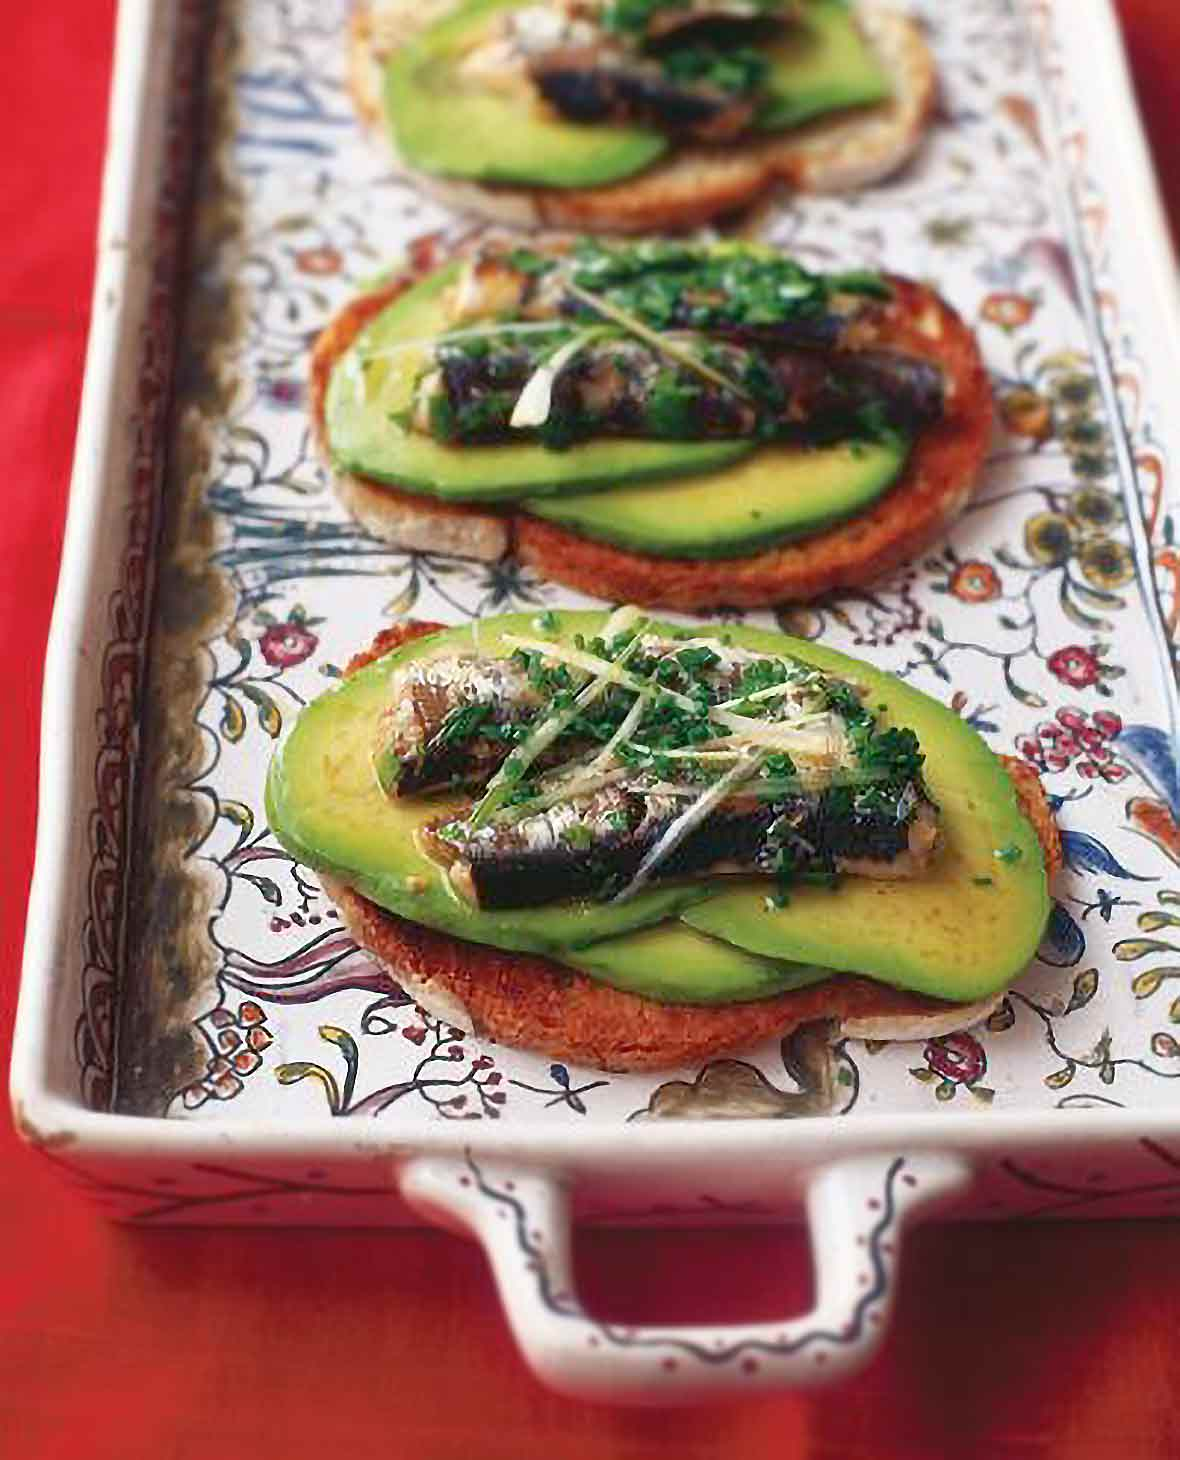 A decorative tray with avocado-sardine toasts--crispy slices of bread topped with avocado, marinated sardines, and scallion and chives